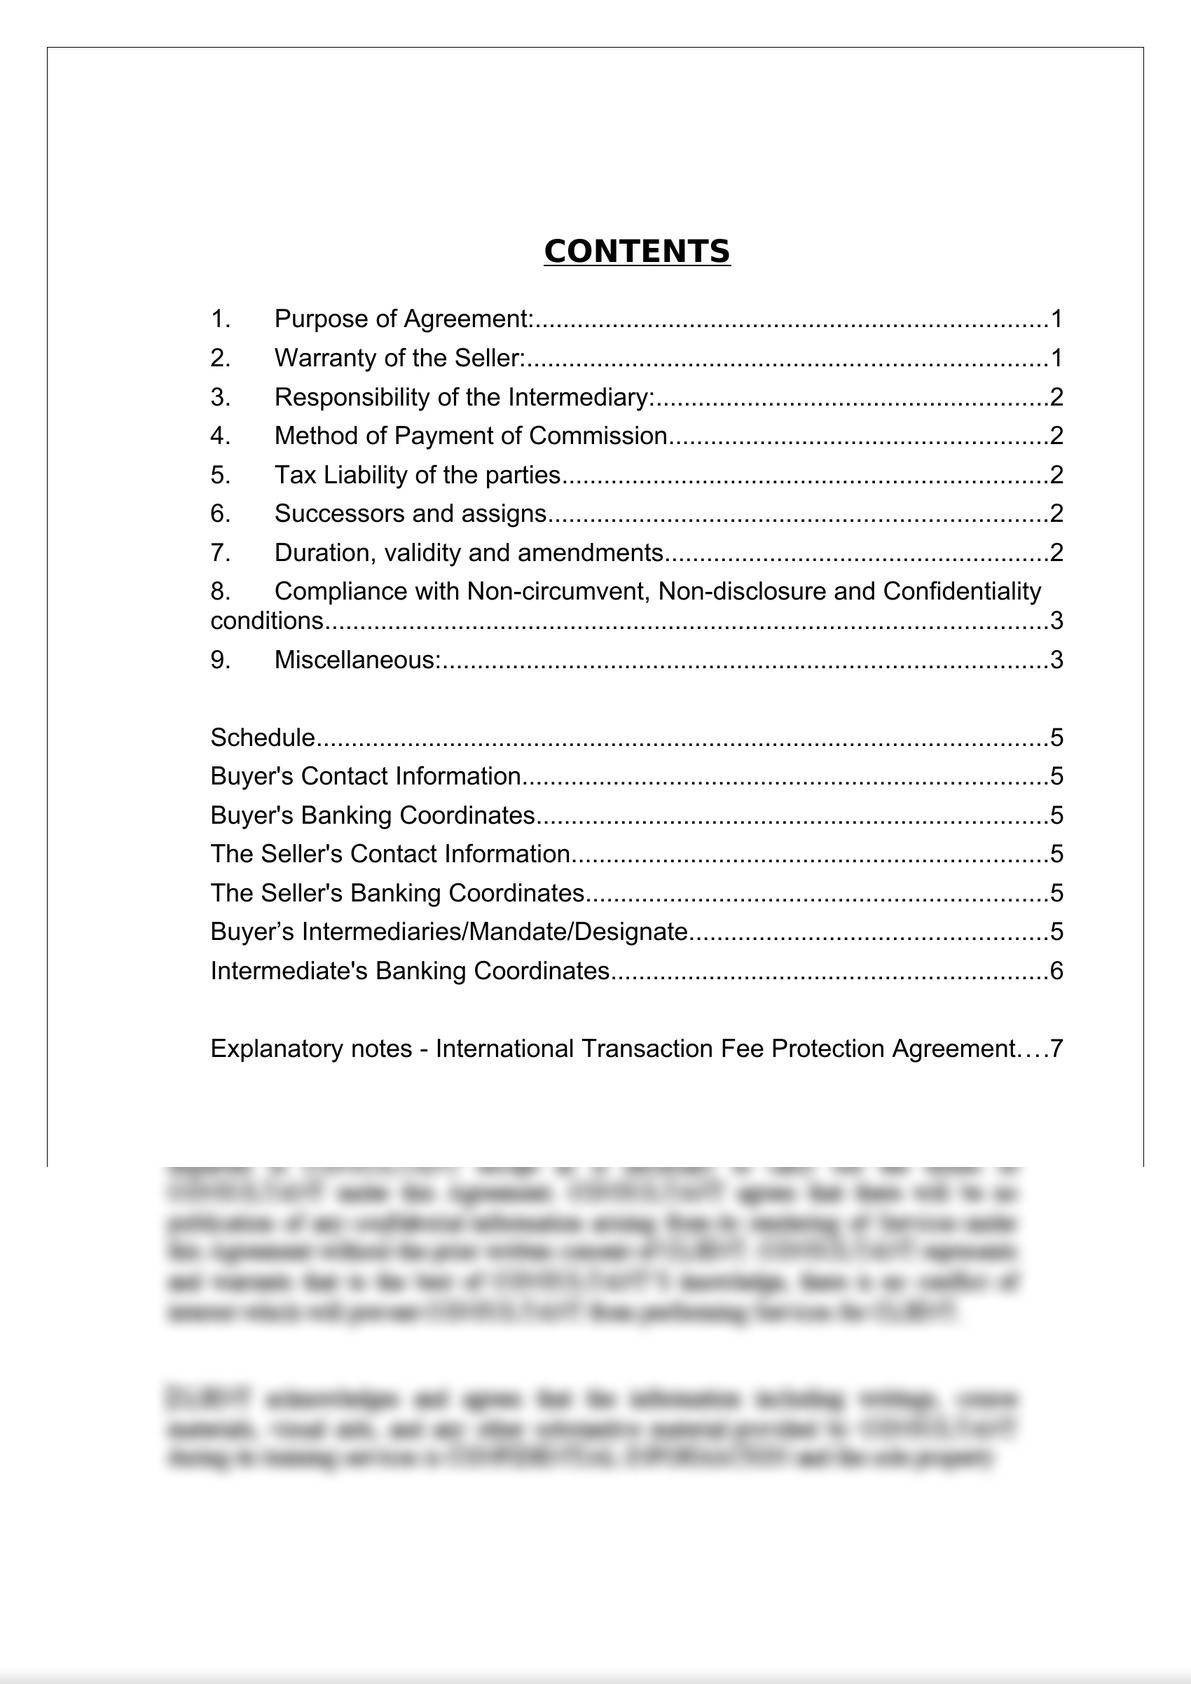 International Transaction Fee Protection Agreement-1